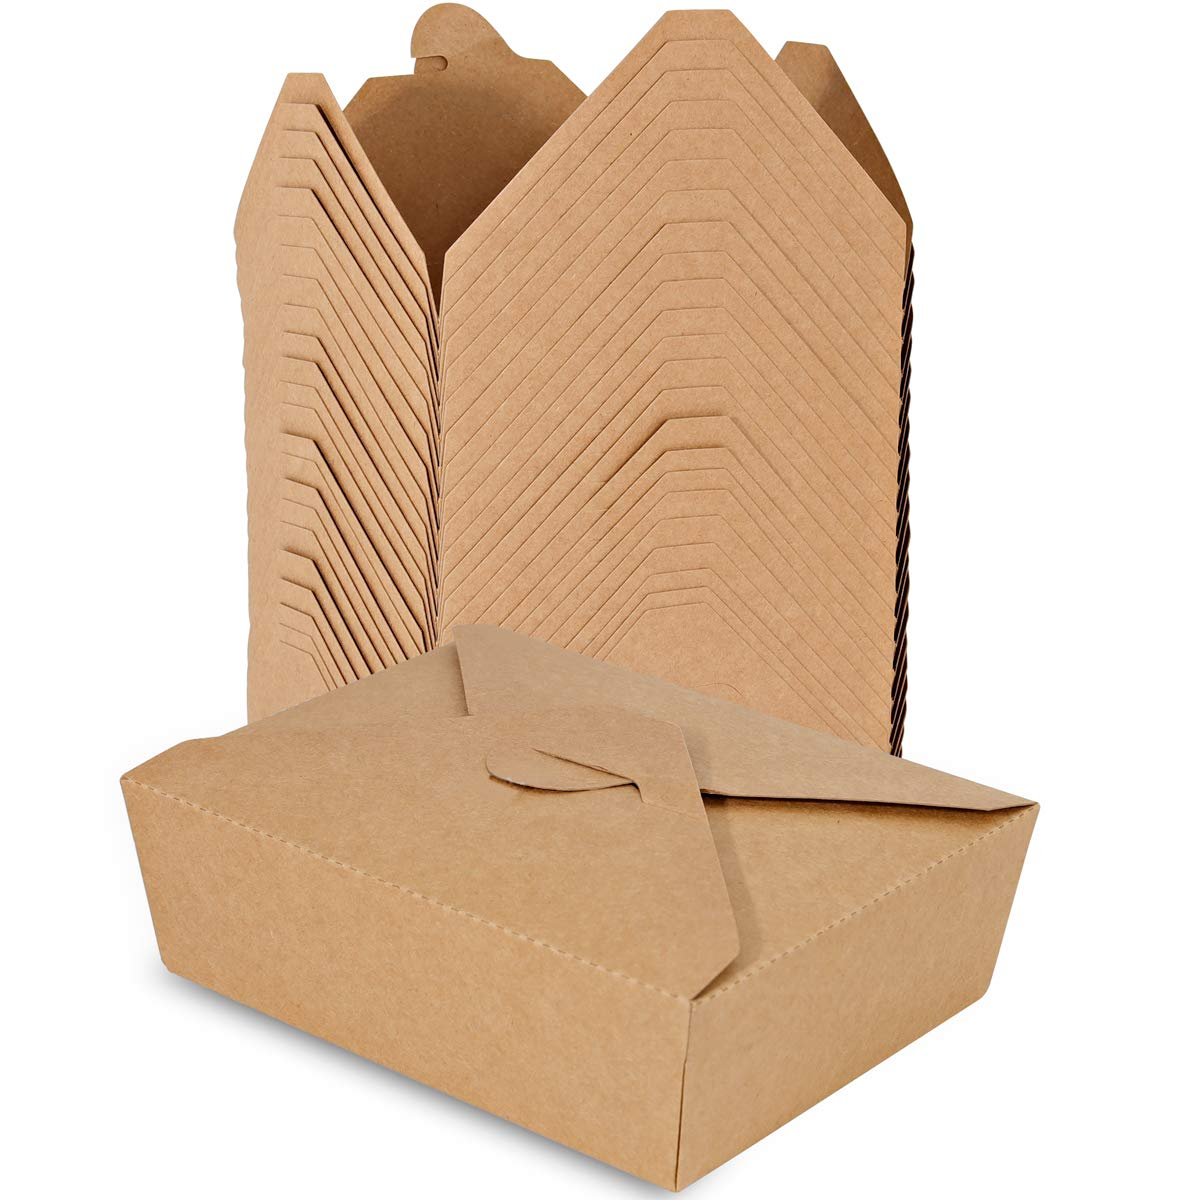 BBG Take Out Food Containers, 45 oz (54 Pack) Disposable Paper Take Out Box, Microwaveable Cardboard Lunch Boxes for Restaurants, Catering and Parties